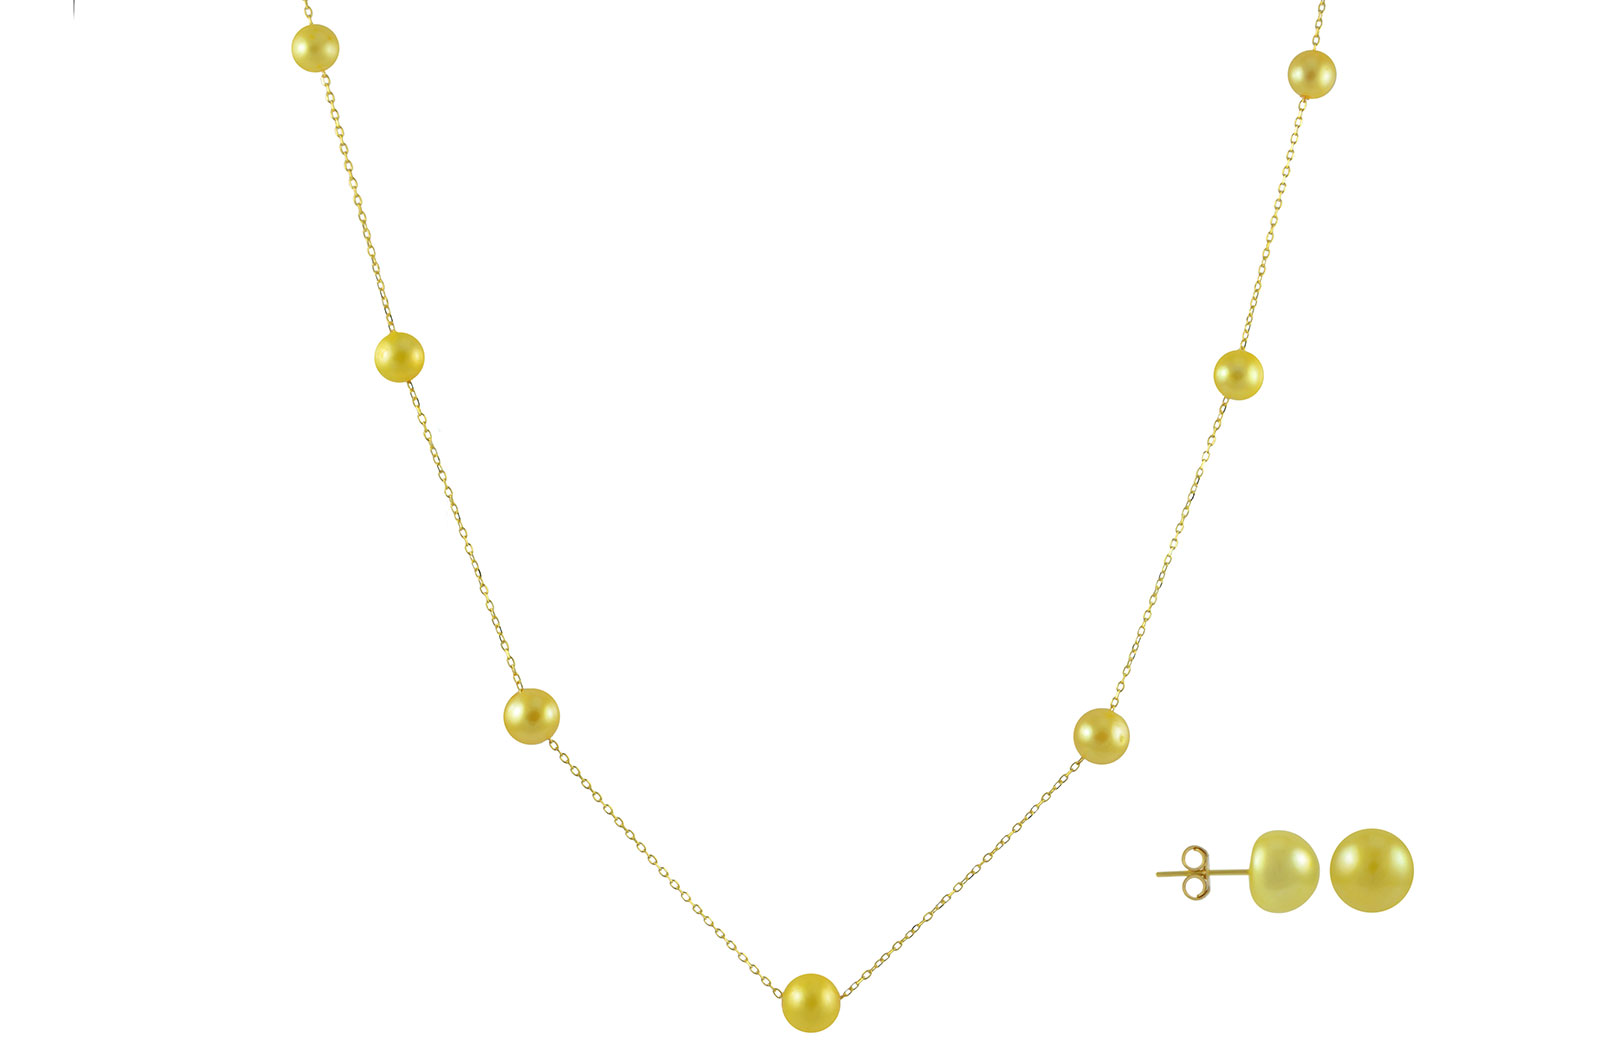 VP Jewels 18K Solid Gold 5-7MM Gradual  Built-in Gold- Yellow Pearl Necklace + 18K Gold 7MM Pearl Earrings